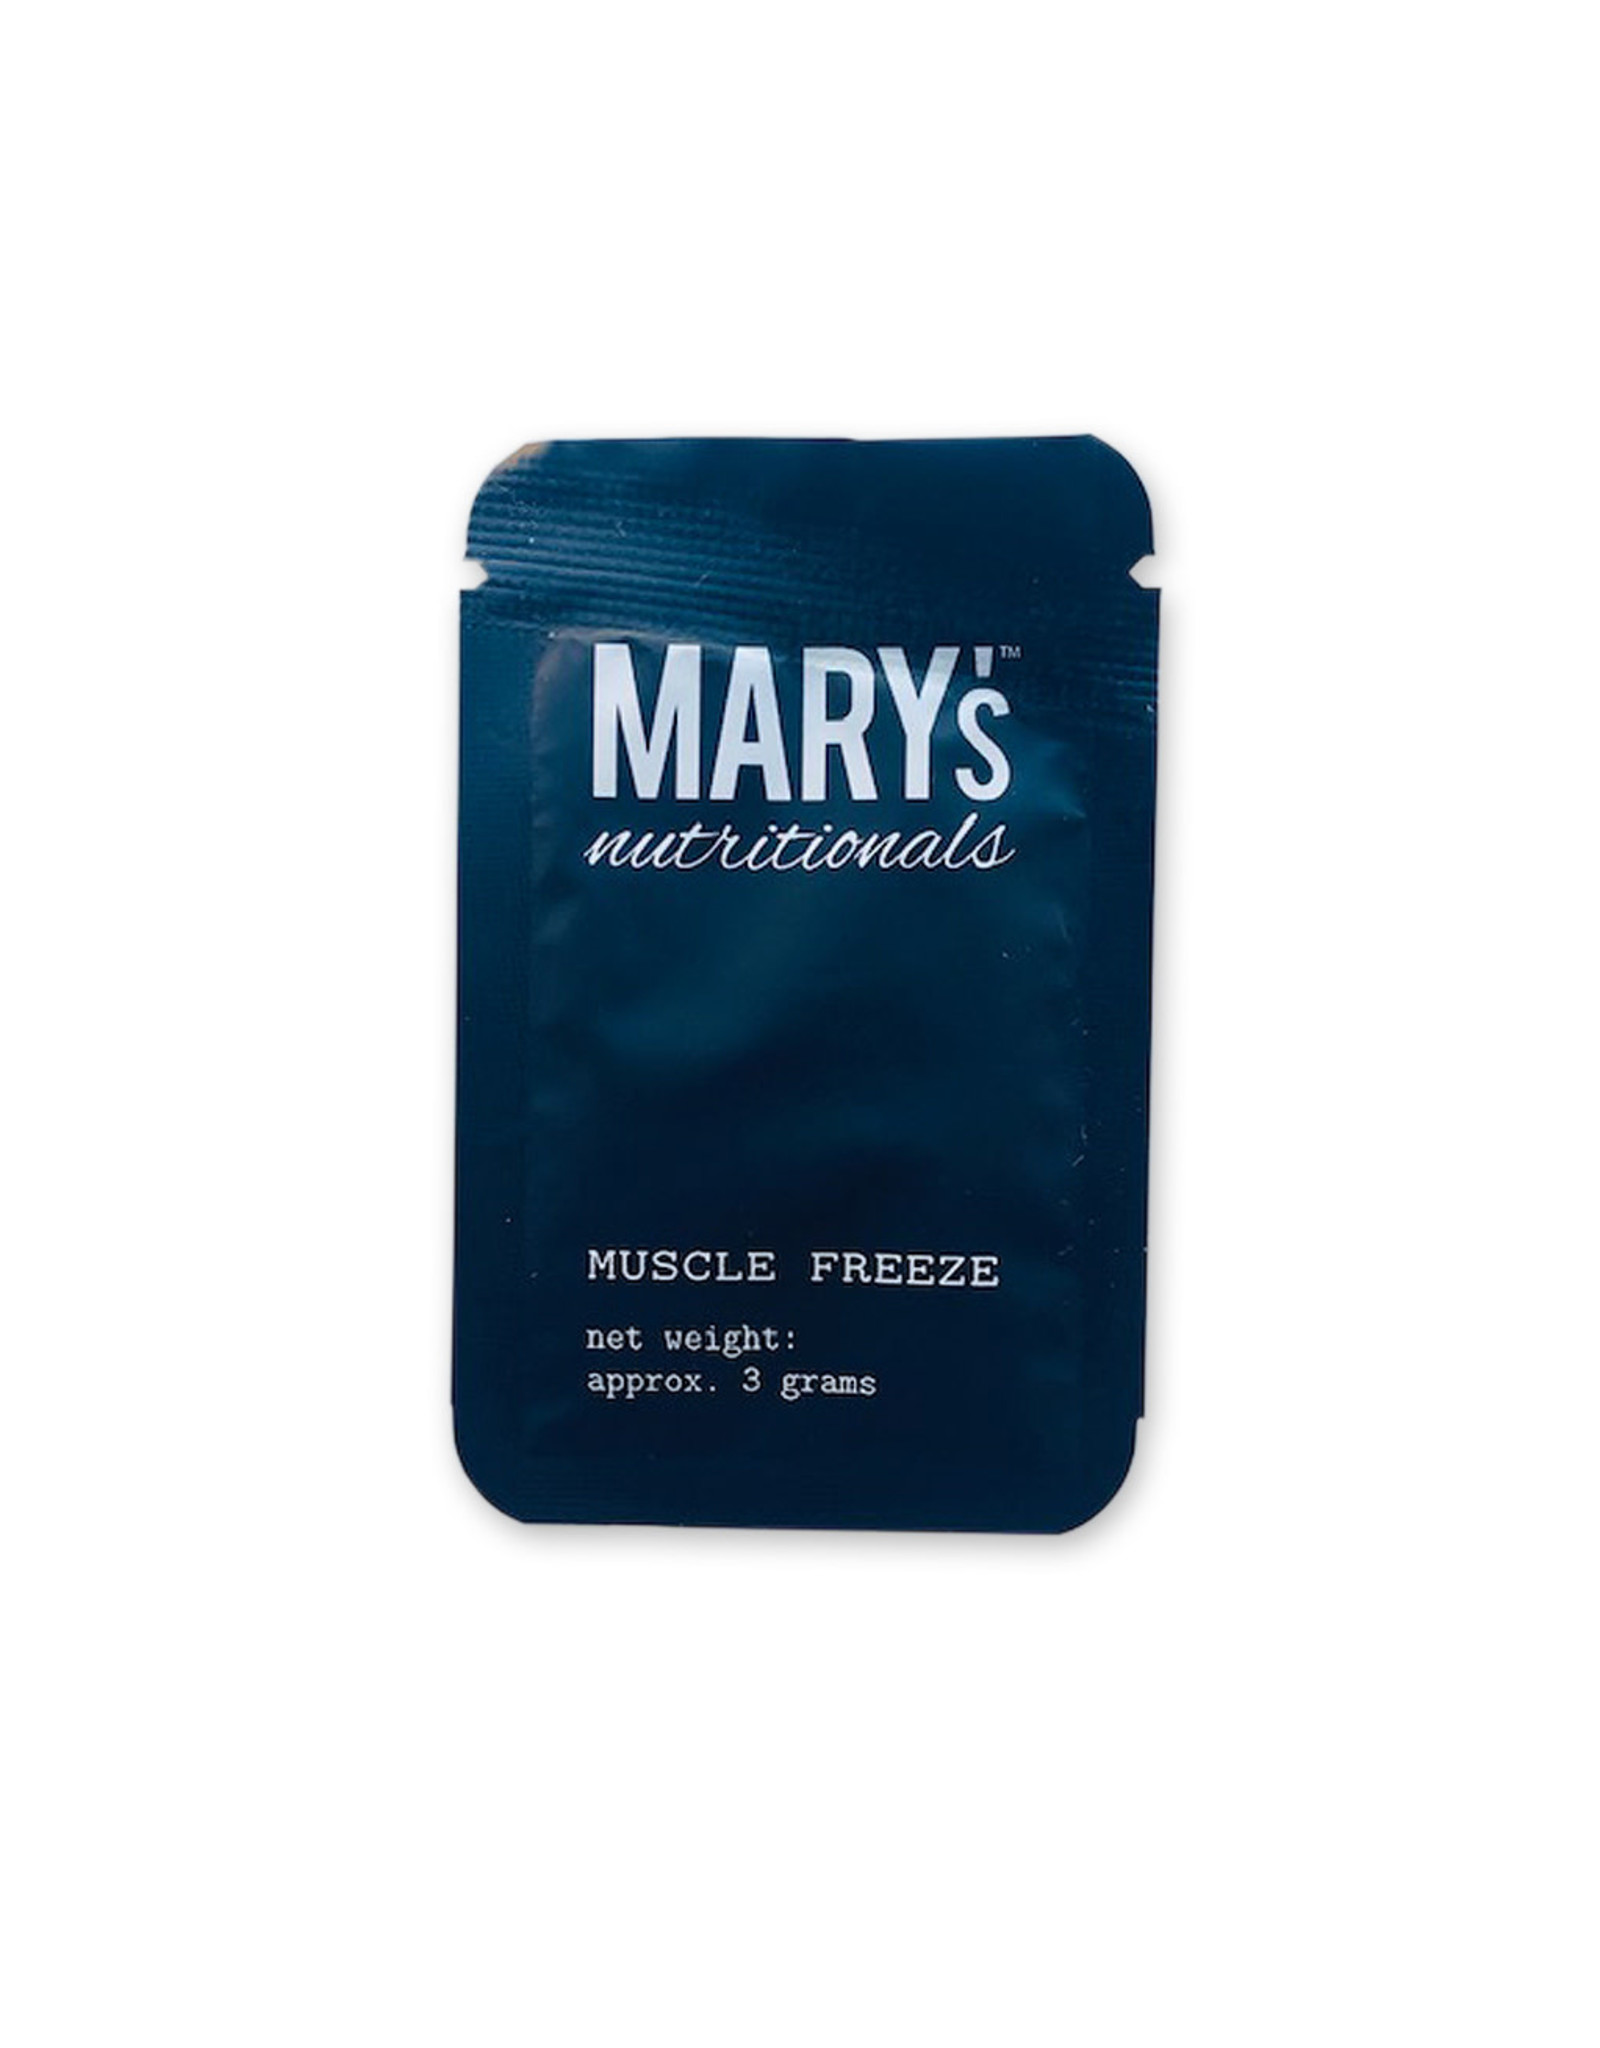 Mary's Nutritionals Mary's Nutritionals 3gm Muscle Freeze Sample